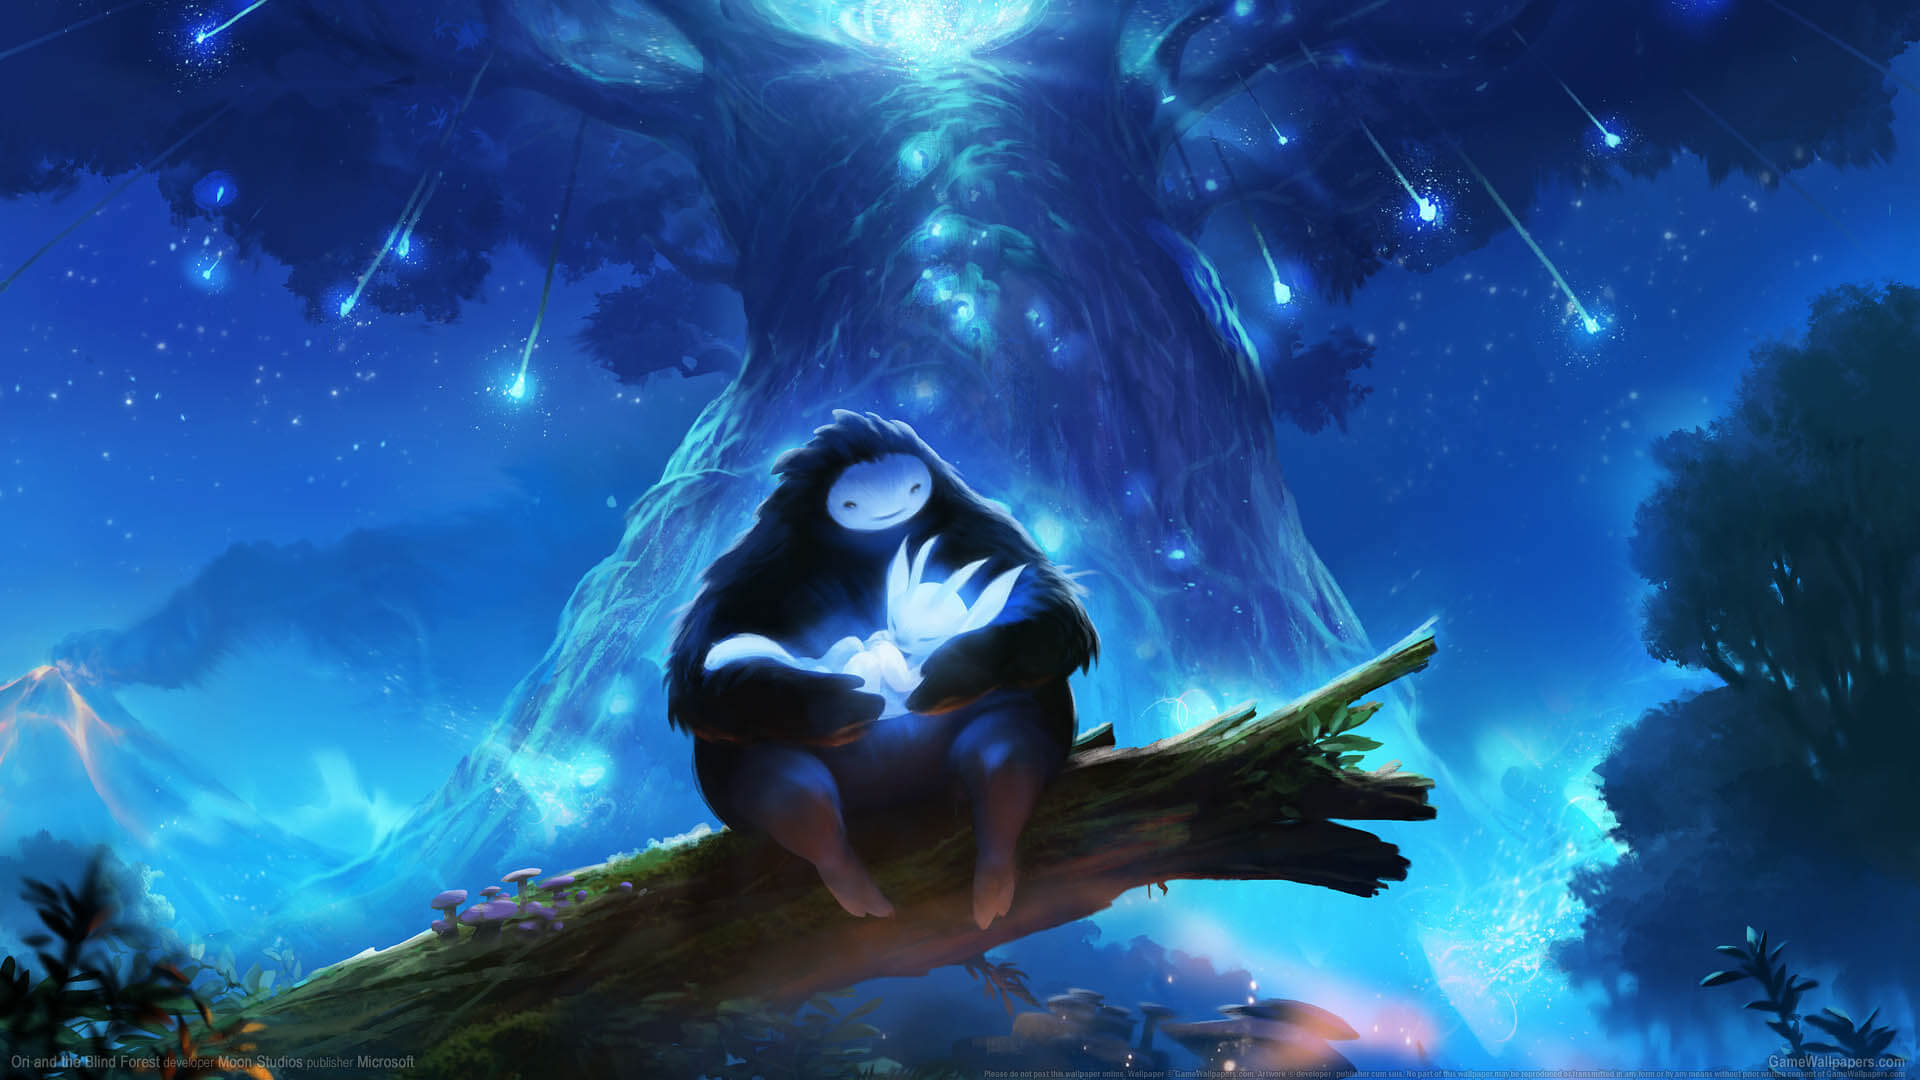 Moon Studios, Ori developers, Open to bringing the character to SSBU